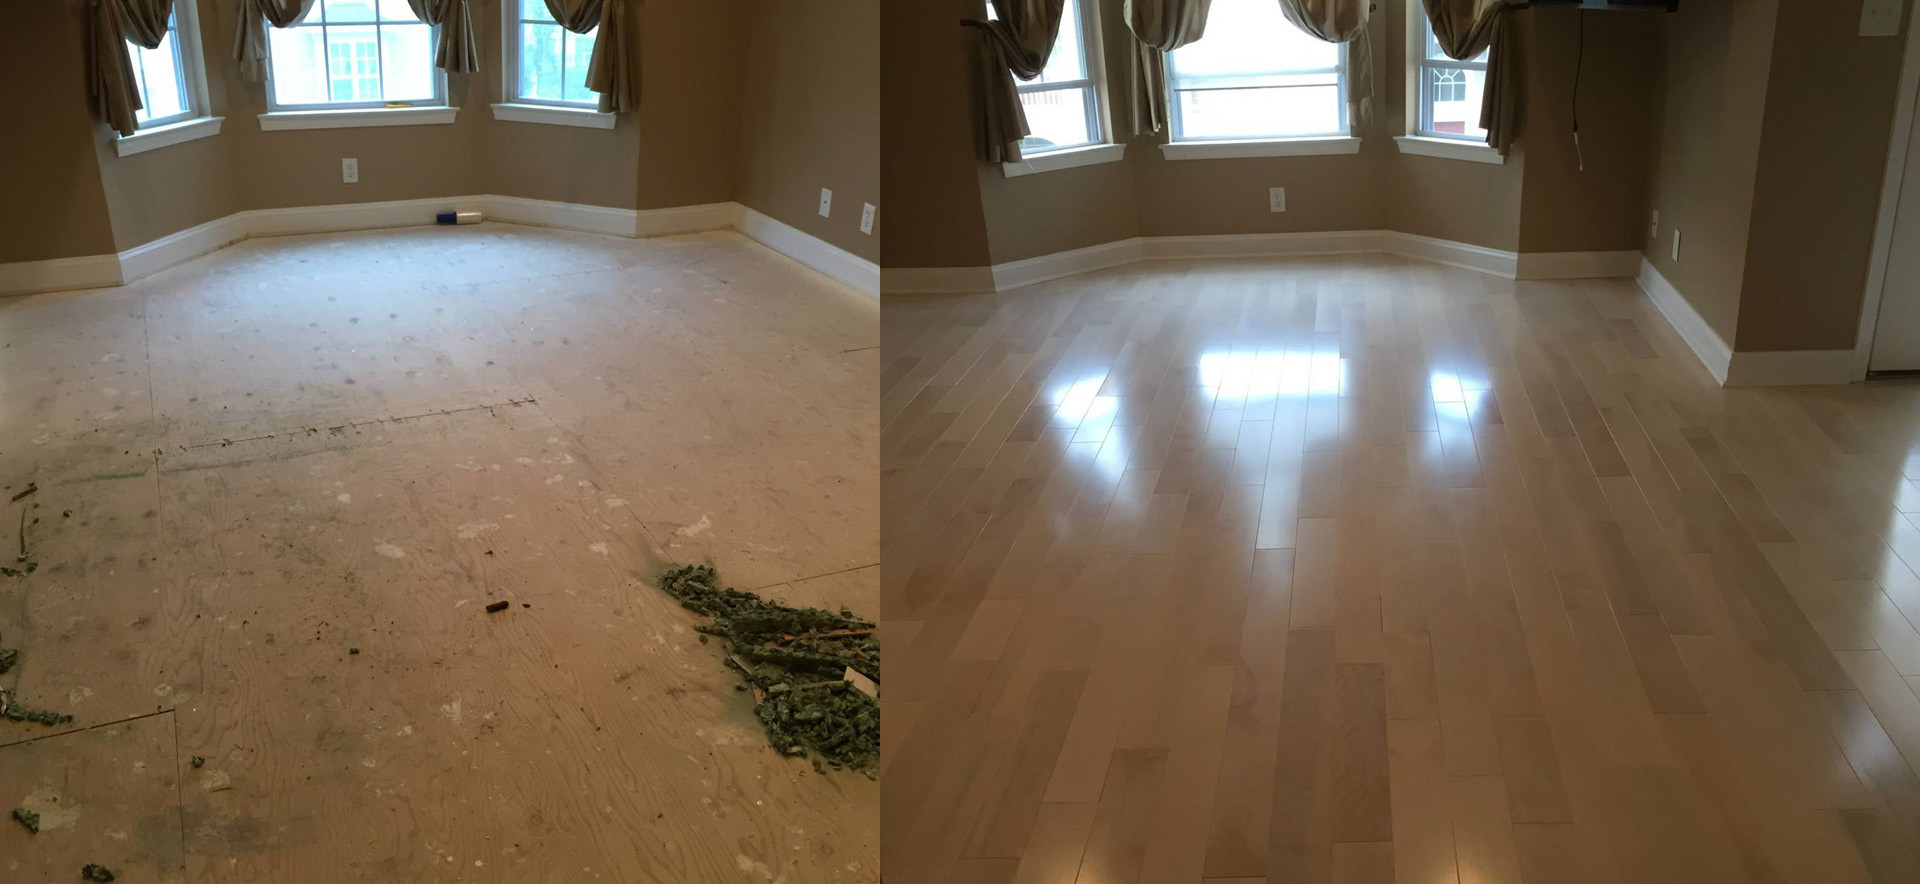 Hardwood Floor Refinishing fort Wayne In Of Hardwood Floors Installation Floor Refinishing and Sanding New Throughout Hardwood Floors Installation Floor Refinishing and Sanding New Jersey Nj